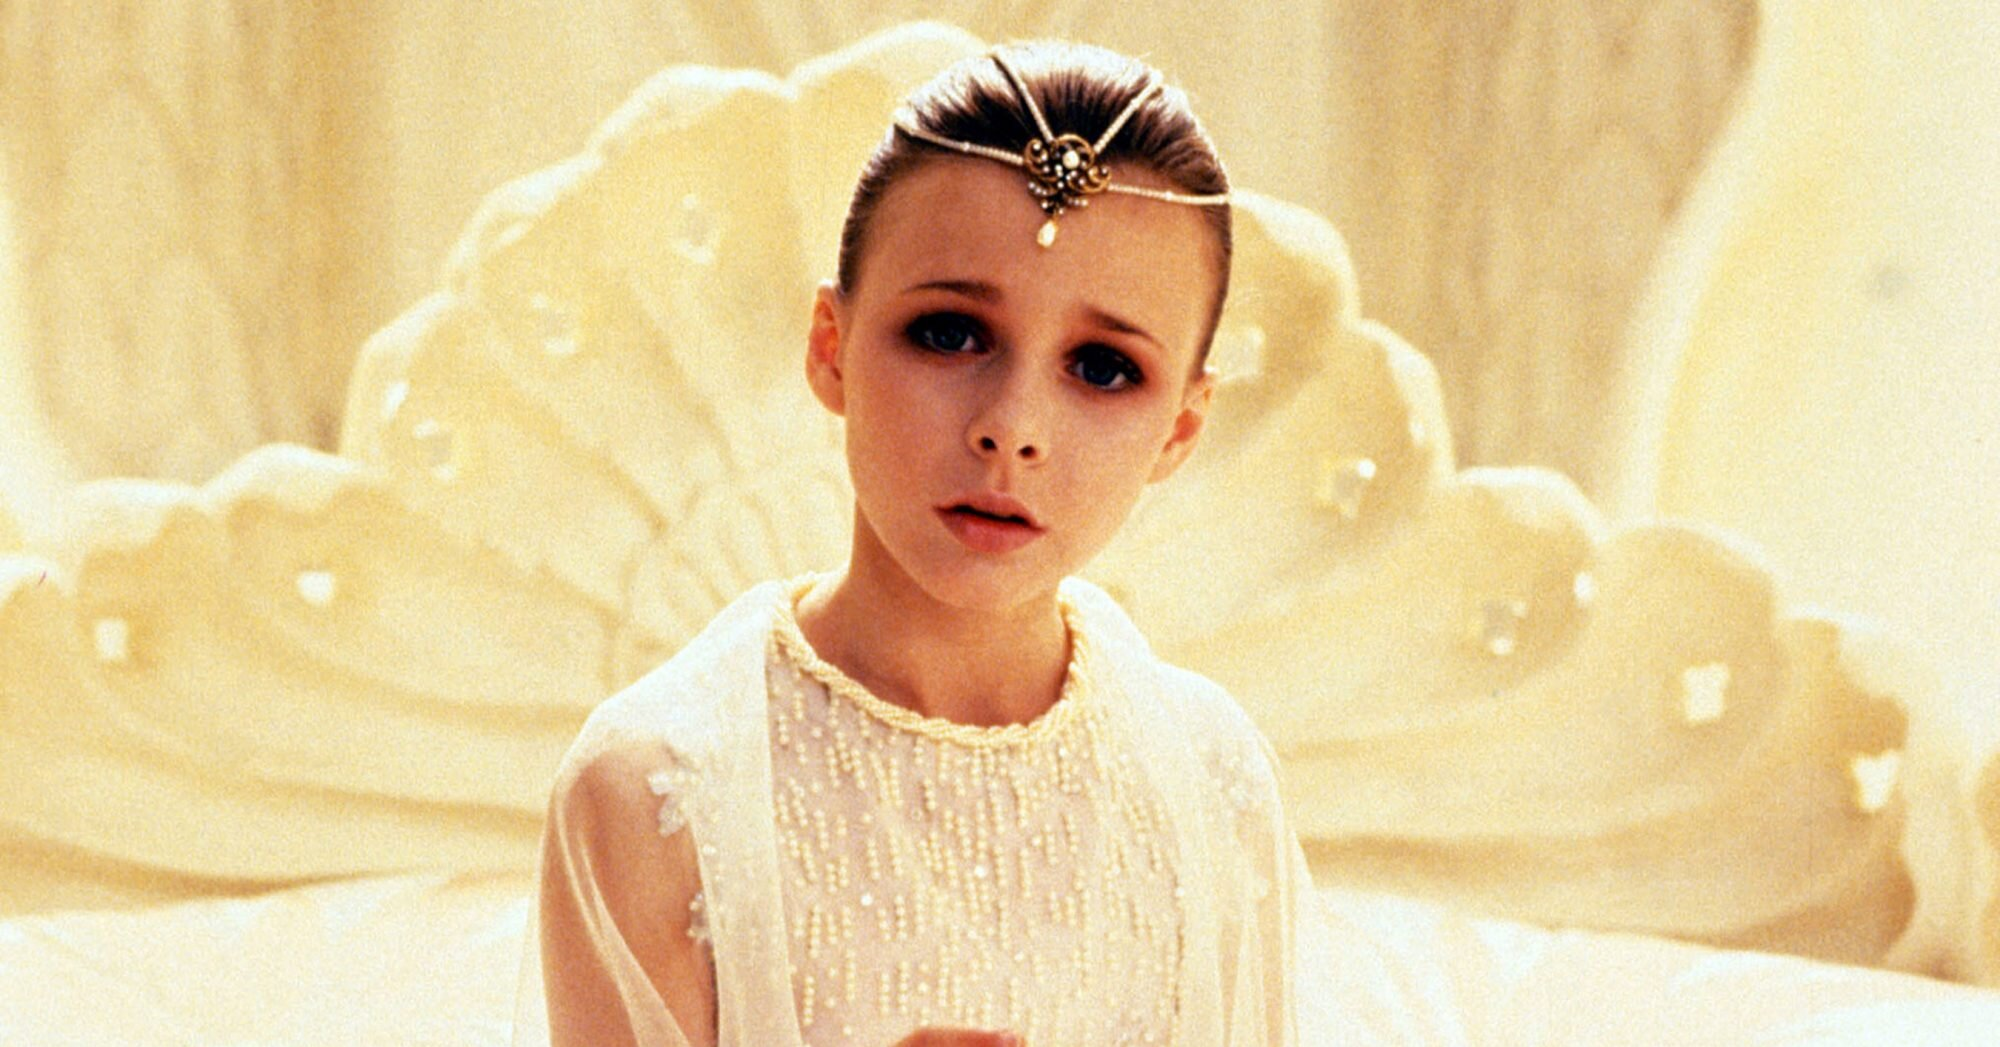 'The NeverEnding Story' star Tami Stronach shares details on new fantasy film 'Man and Witch'